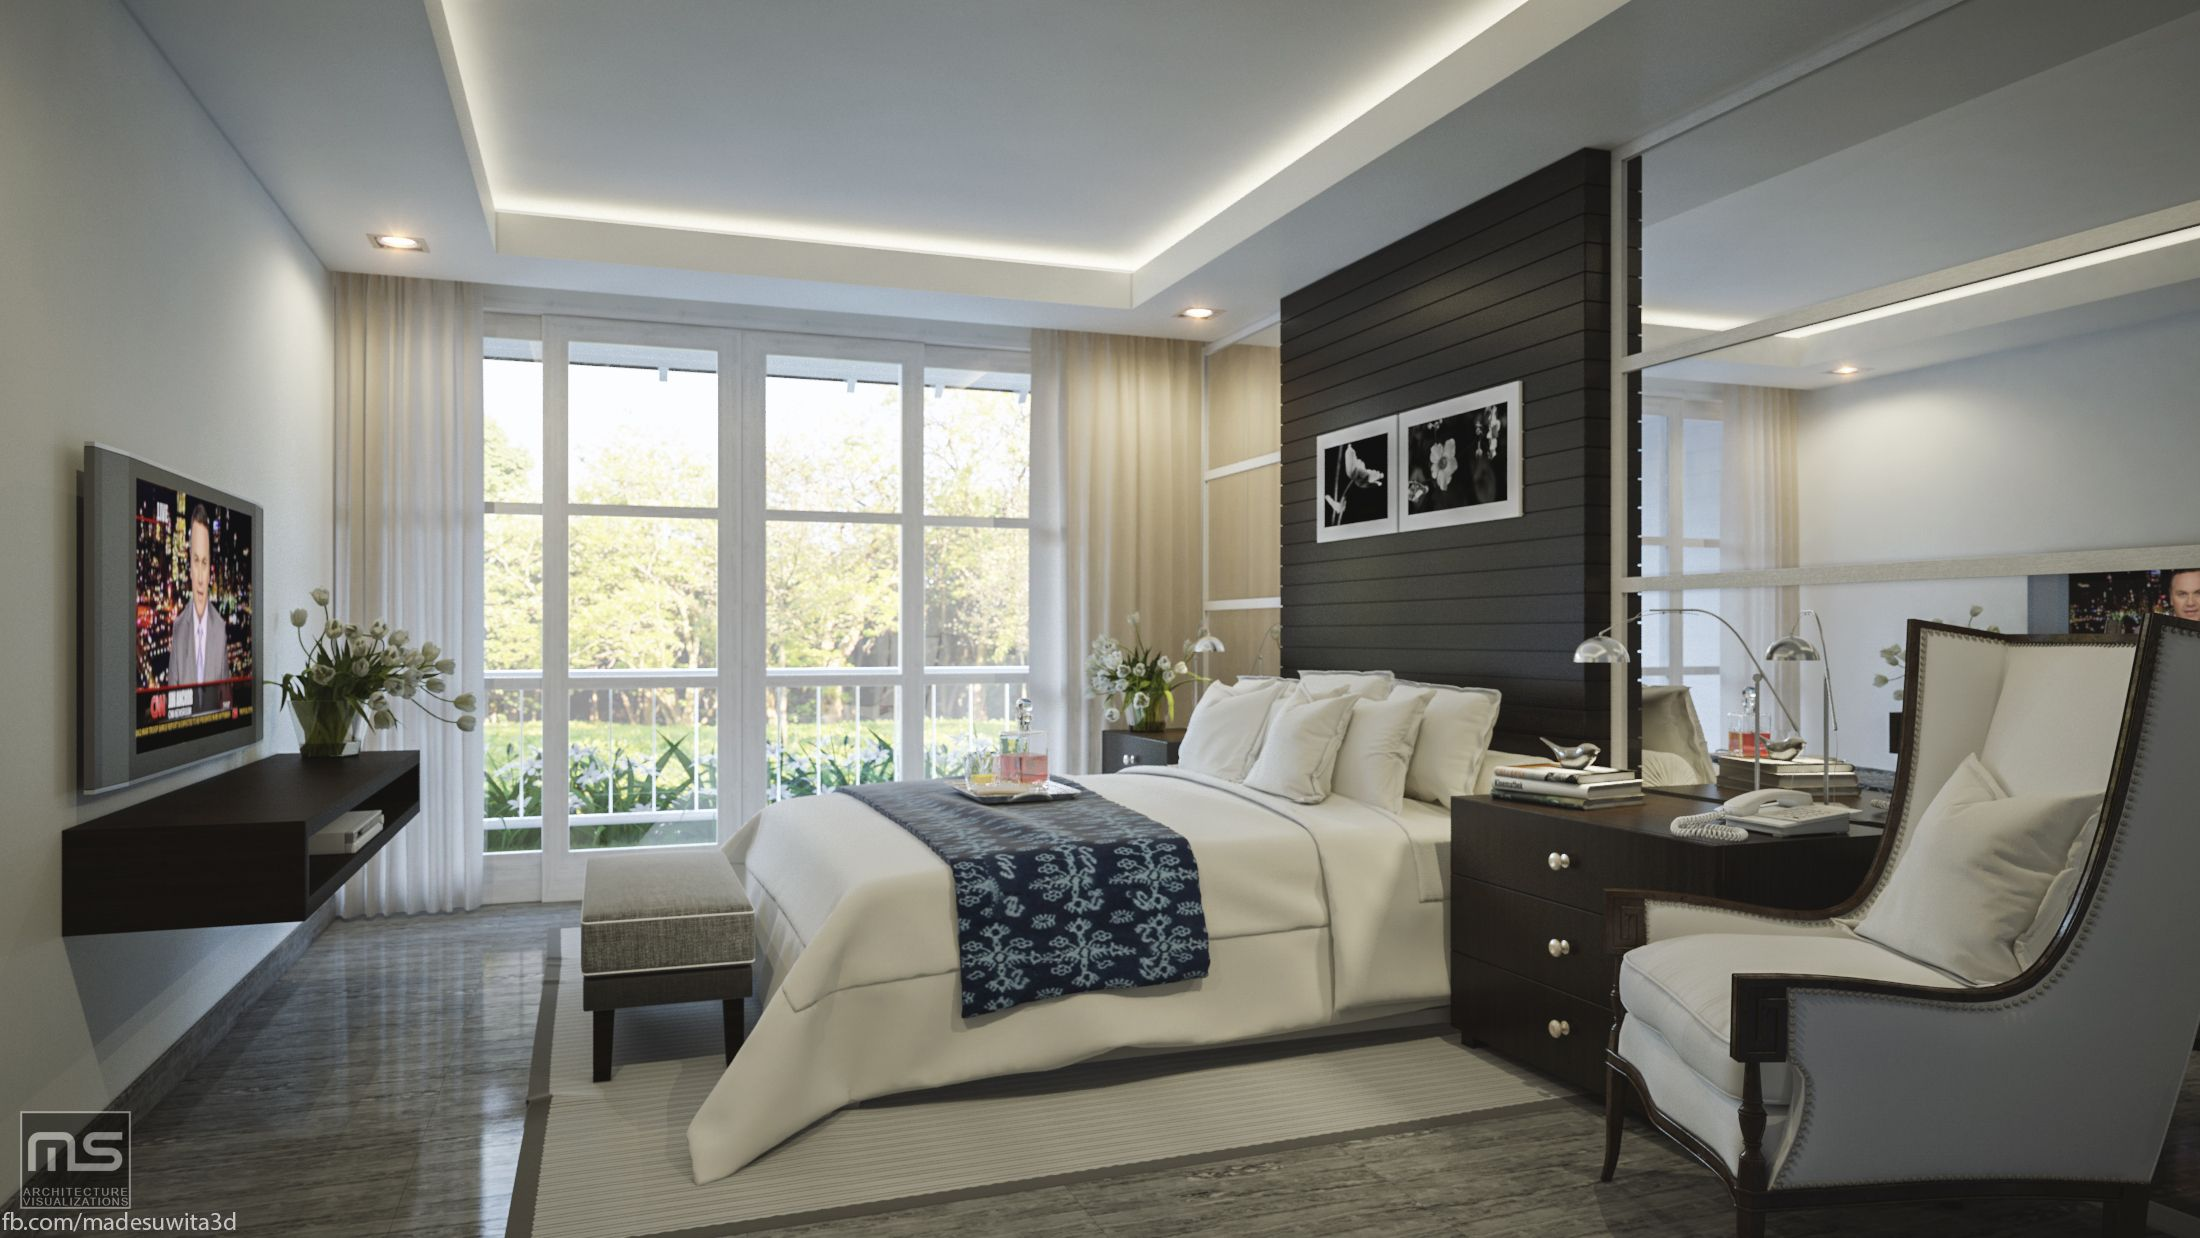 Mix Interior Renderings 3d Model Apartment Bedroom Interior Rendering Done By 3ds Max Vray Interior Design Bedroom Bedroom Interior Modern Bedroom Interior